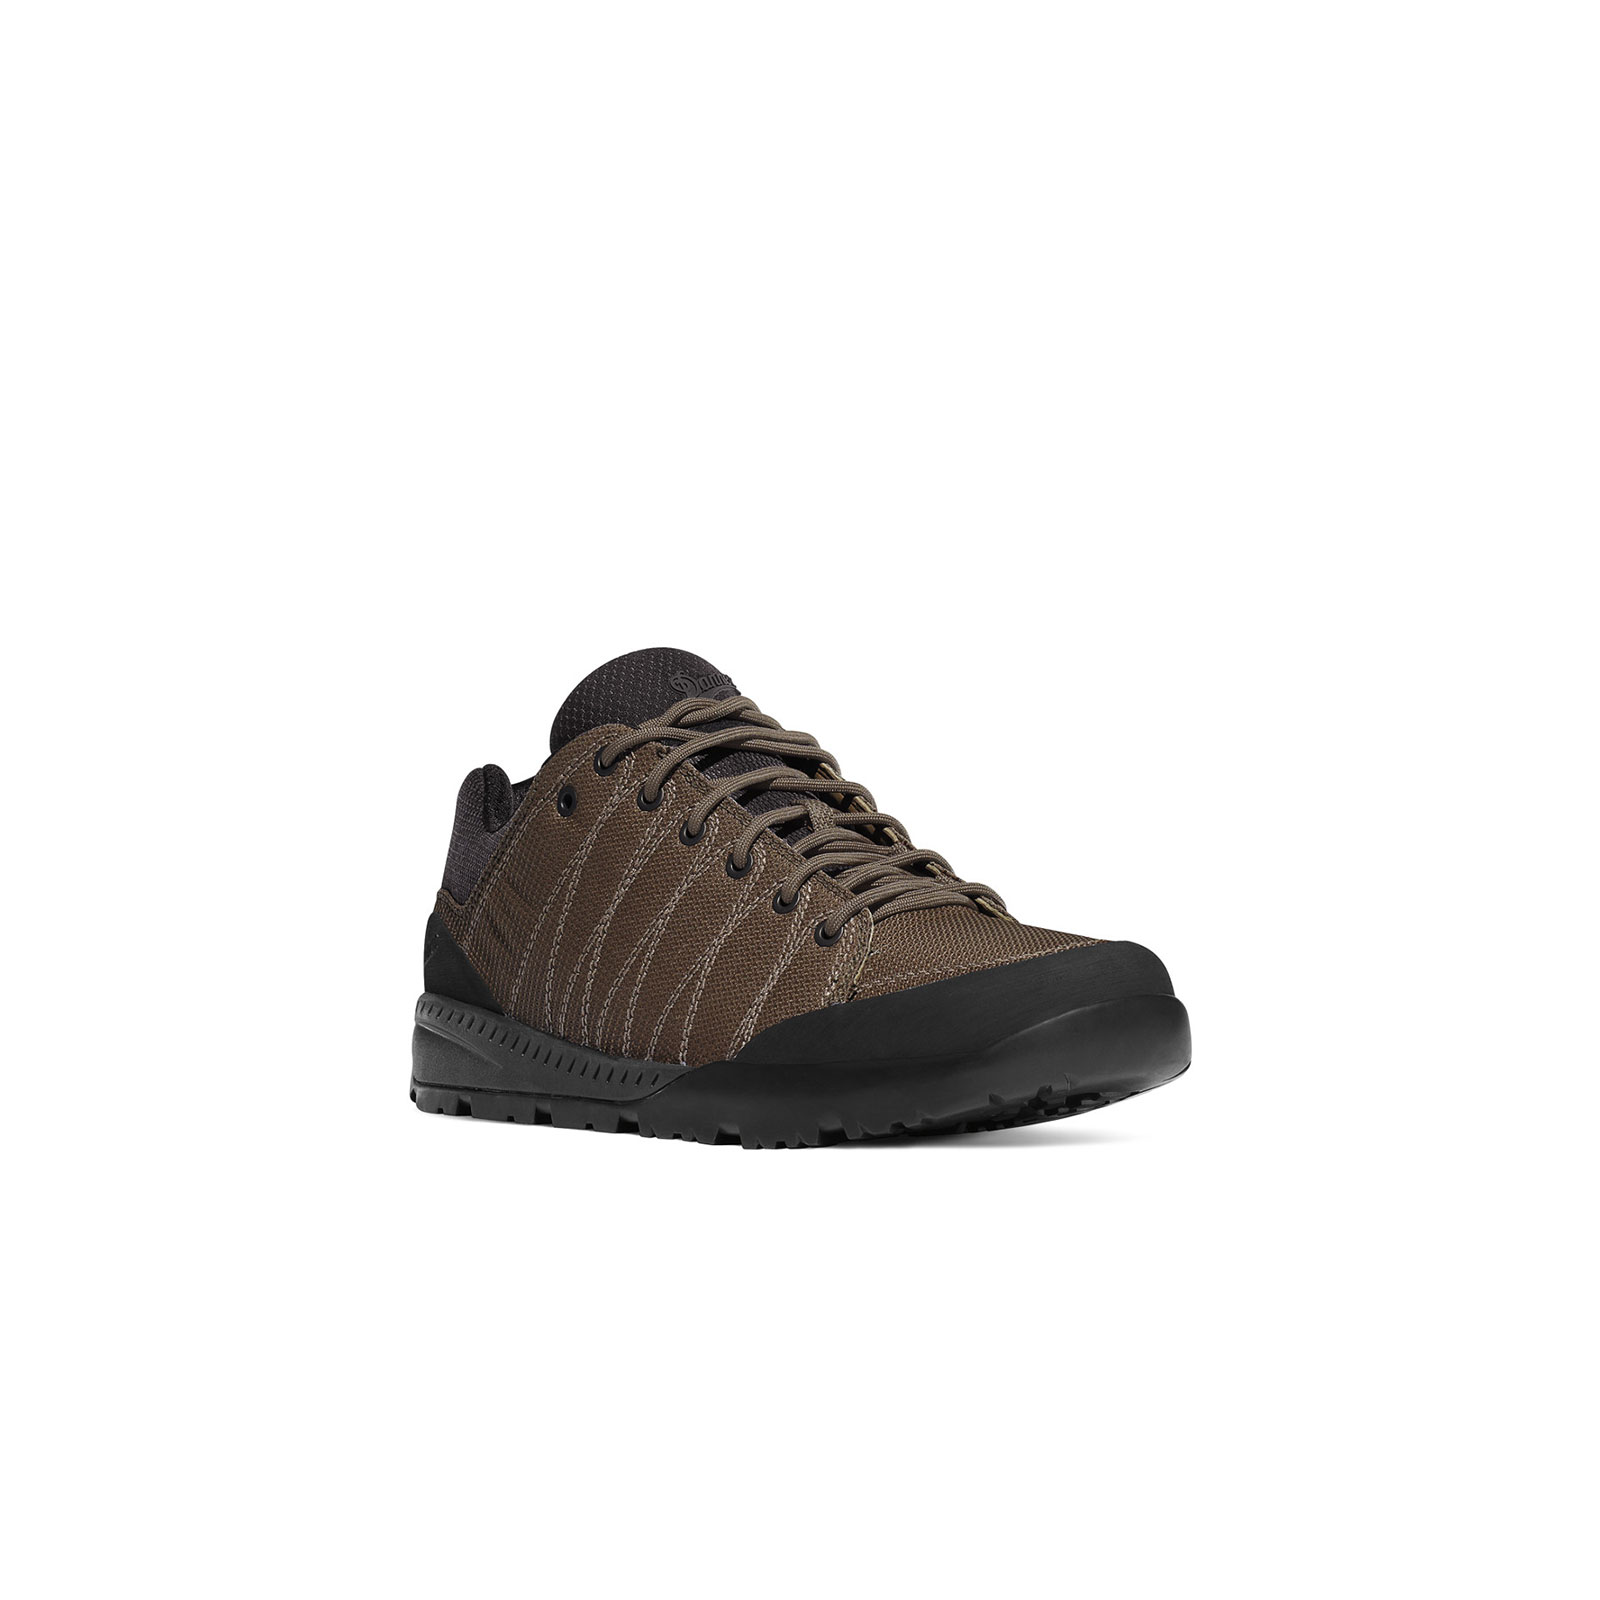 Danner Mens Melee Canteen Brown Duty Shoes 15914 by Danner